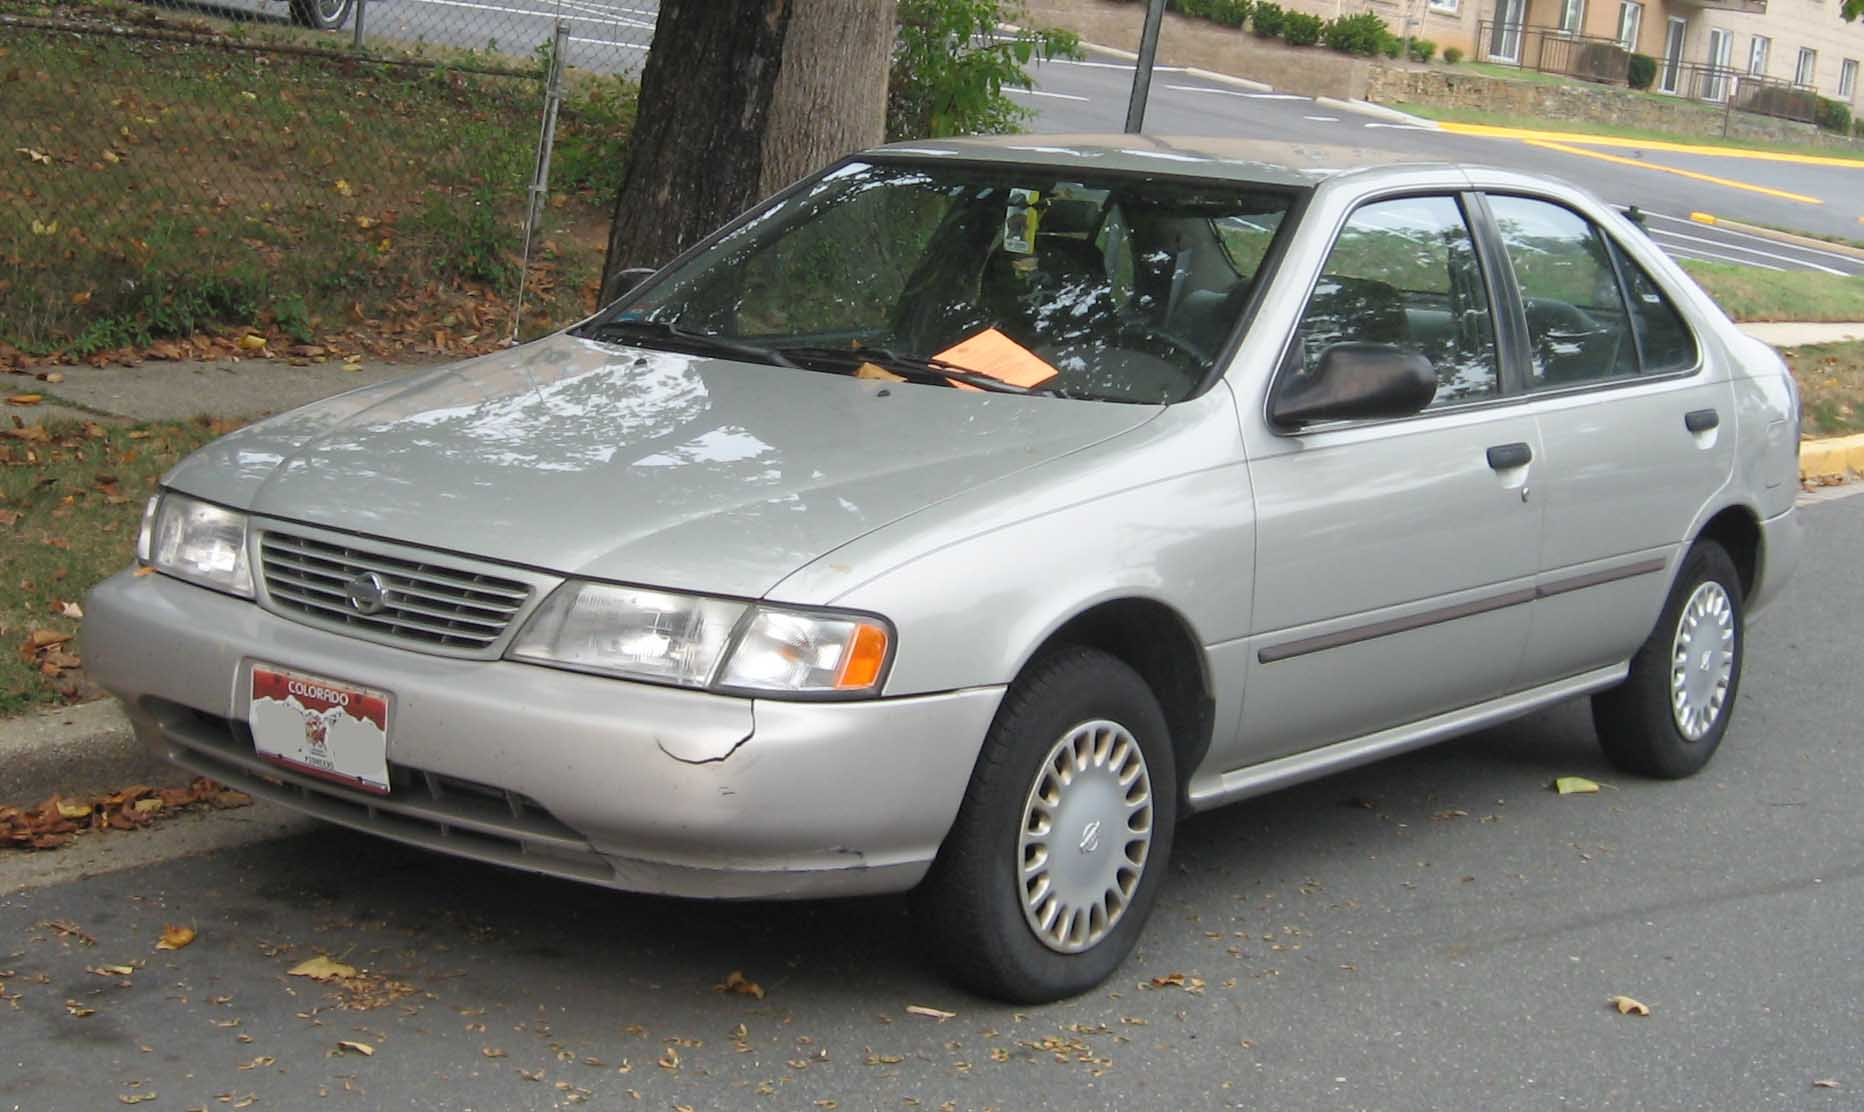 1997 Nissan Sentra Information And Photos Zombiedrive Wiring Diagram For 1999 1